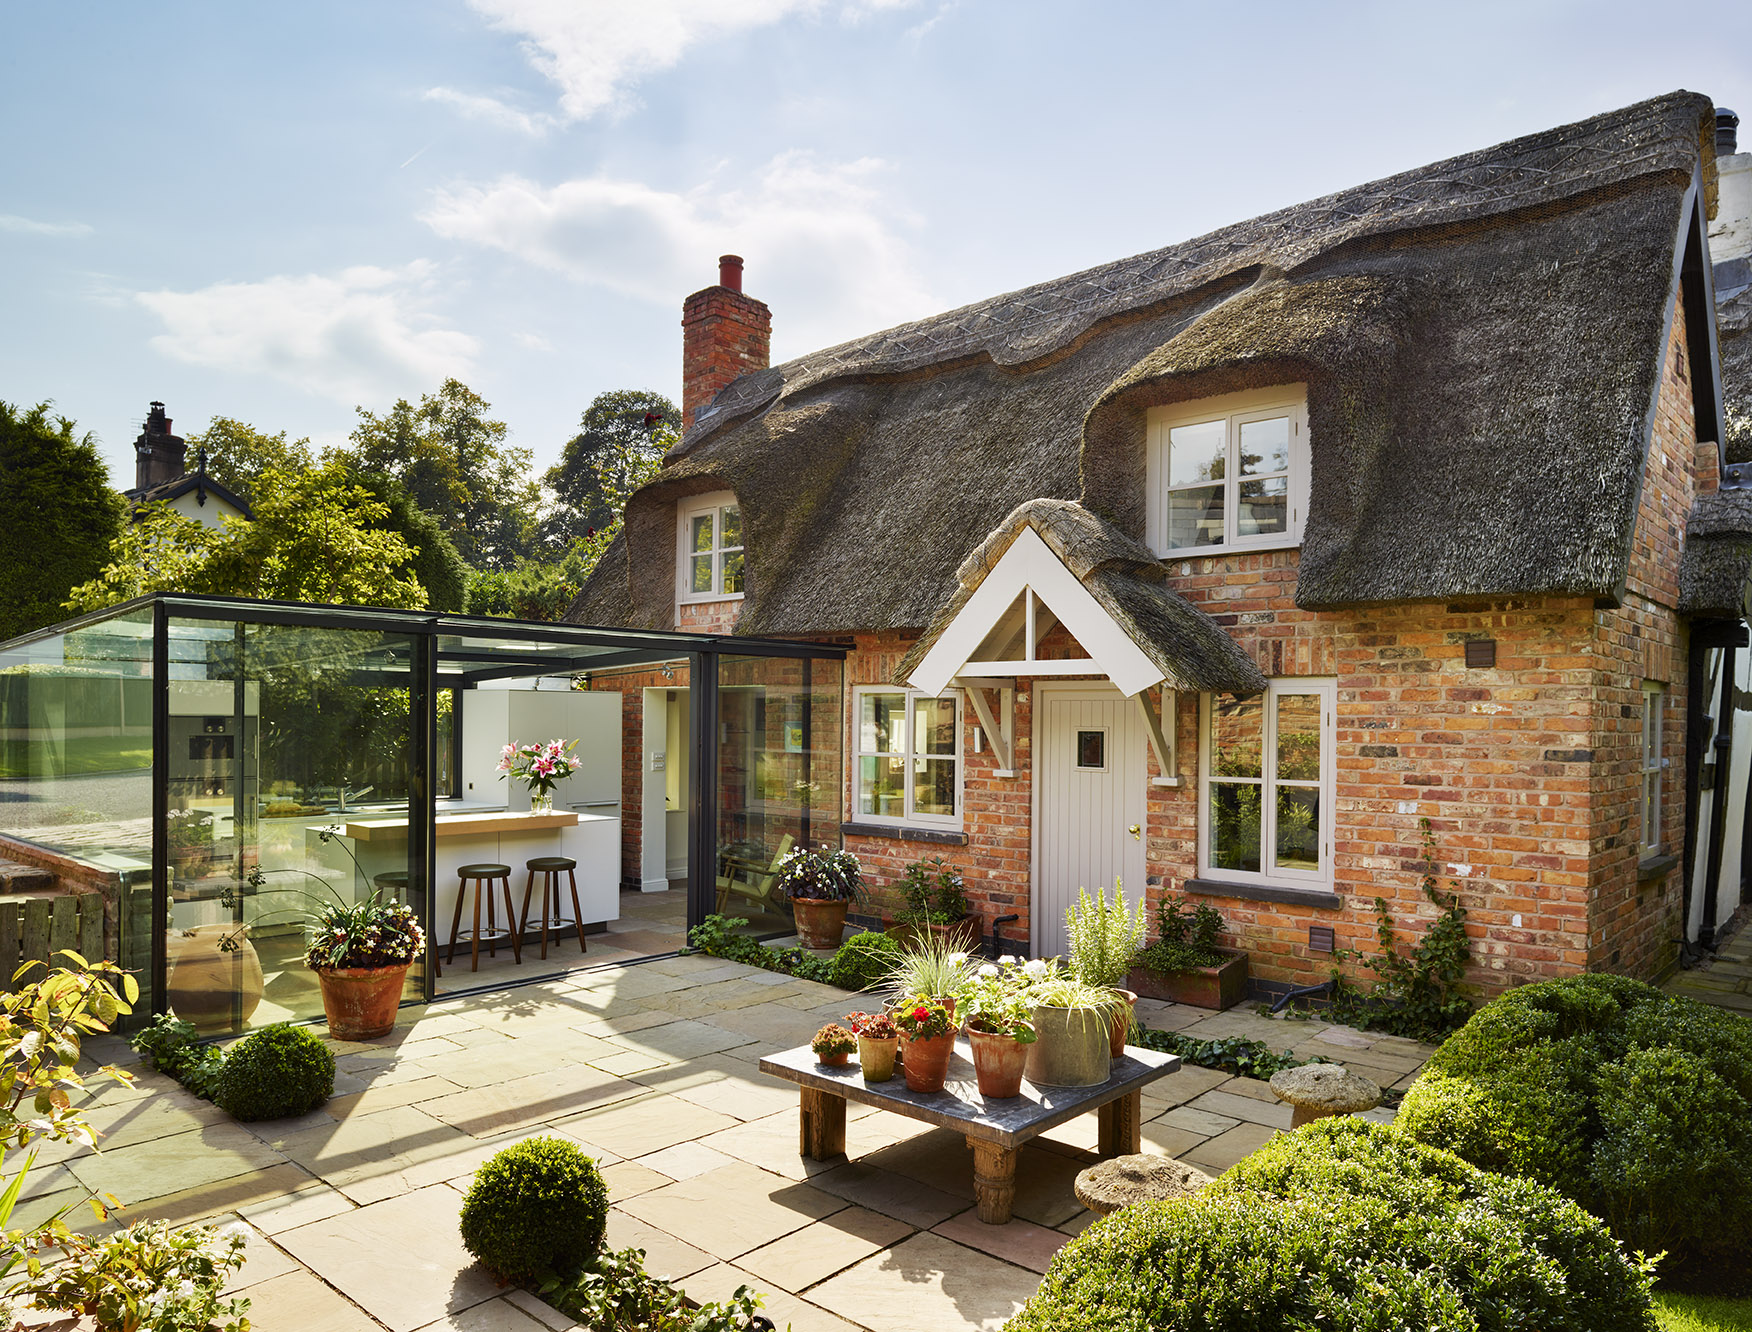 Blending Old and New: 6 Bold Glass Additions to Traditional English Homes